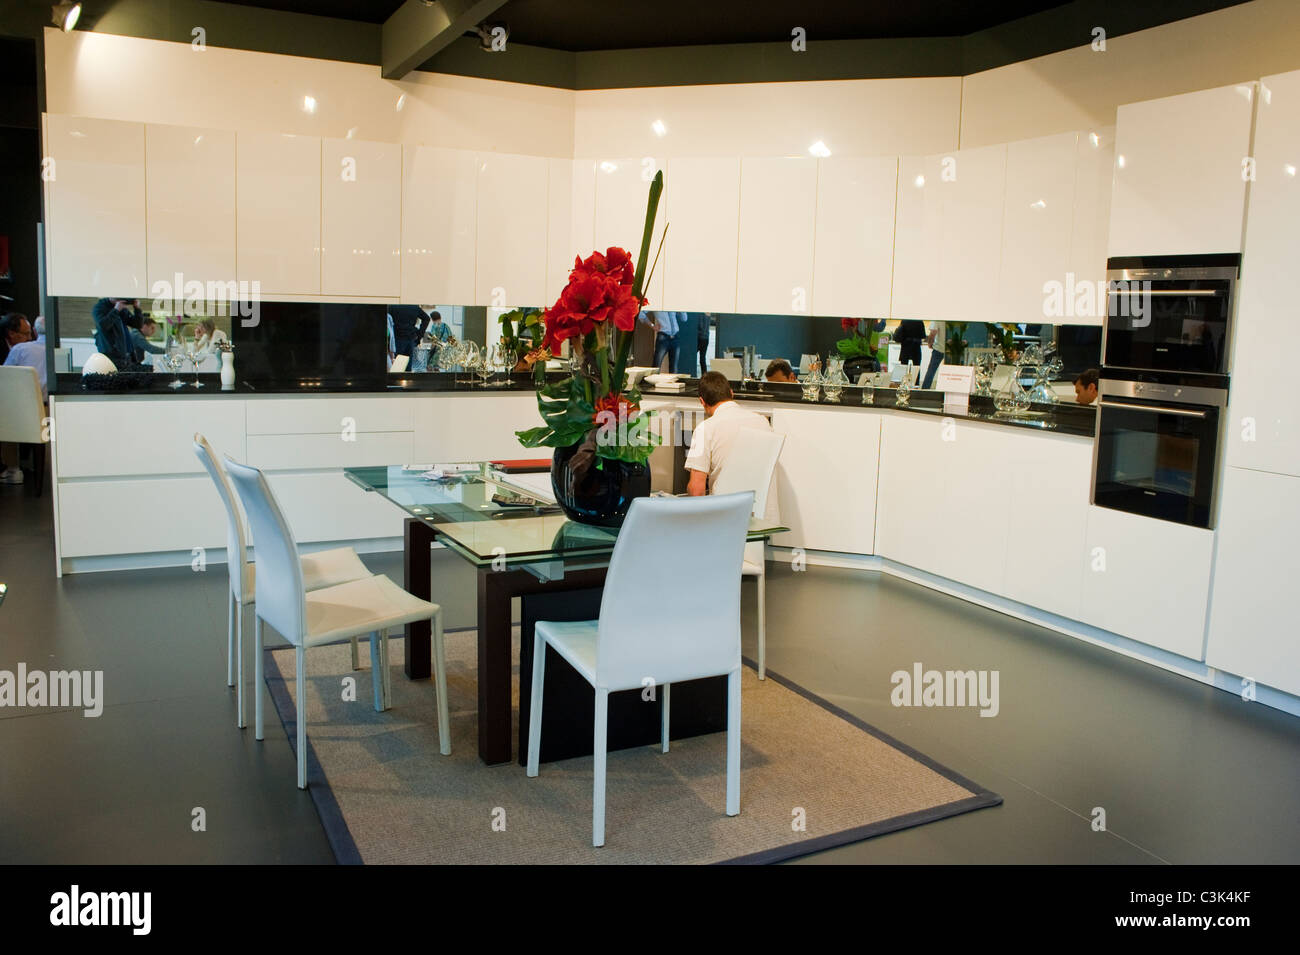 paris france contemporary kitchen interior at trade show modern stock photo royalty free. Black Bedroom Furniture Sets. Home Design Ideas